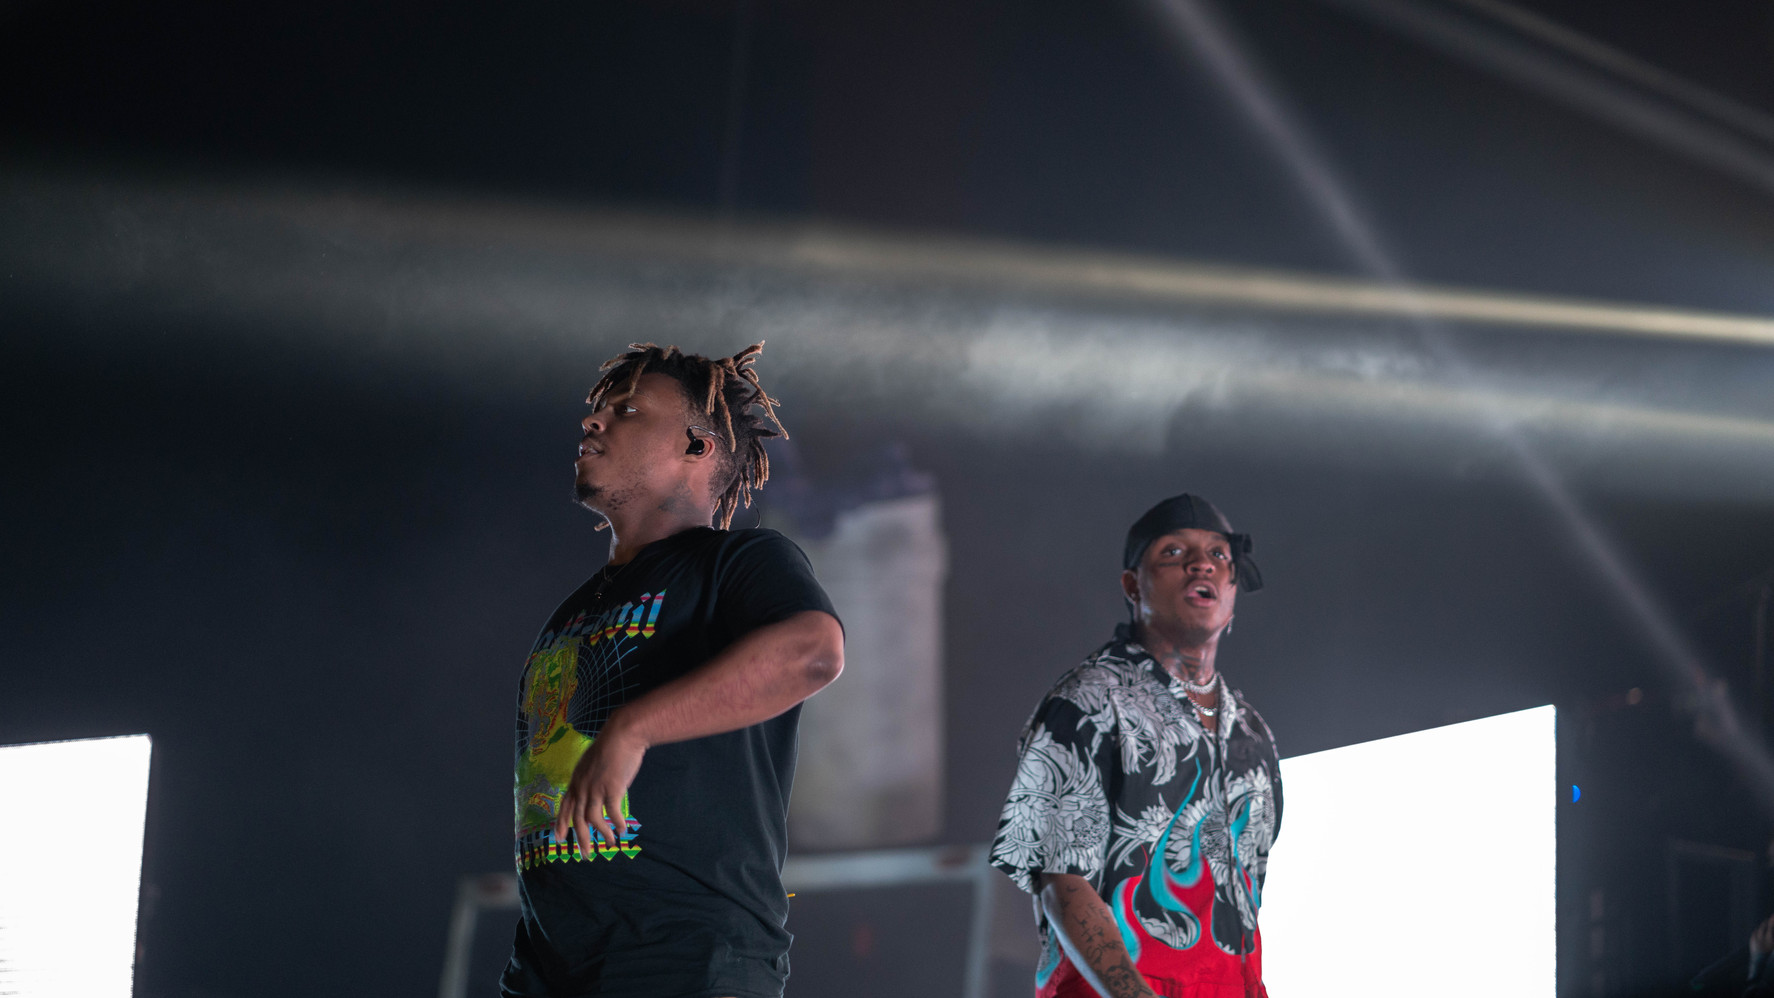 Juice Wrld & Ski Mask the Slump God